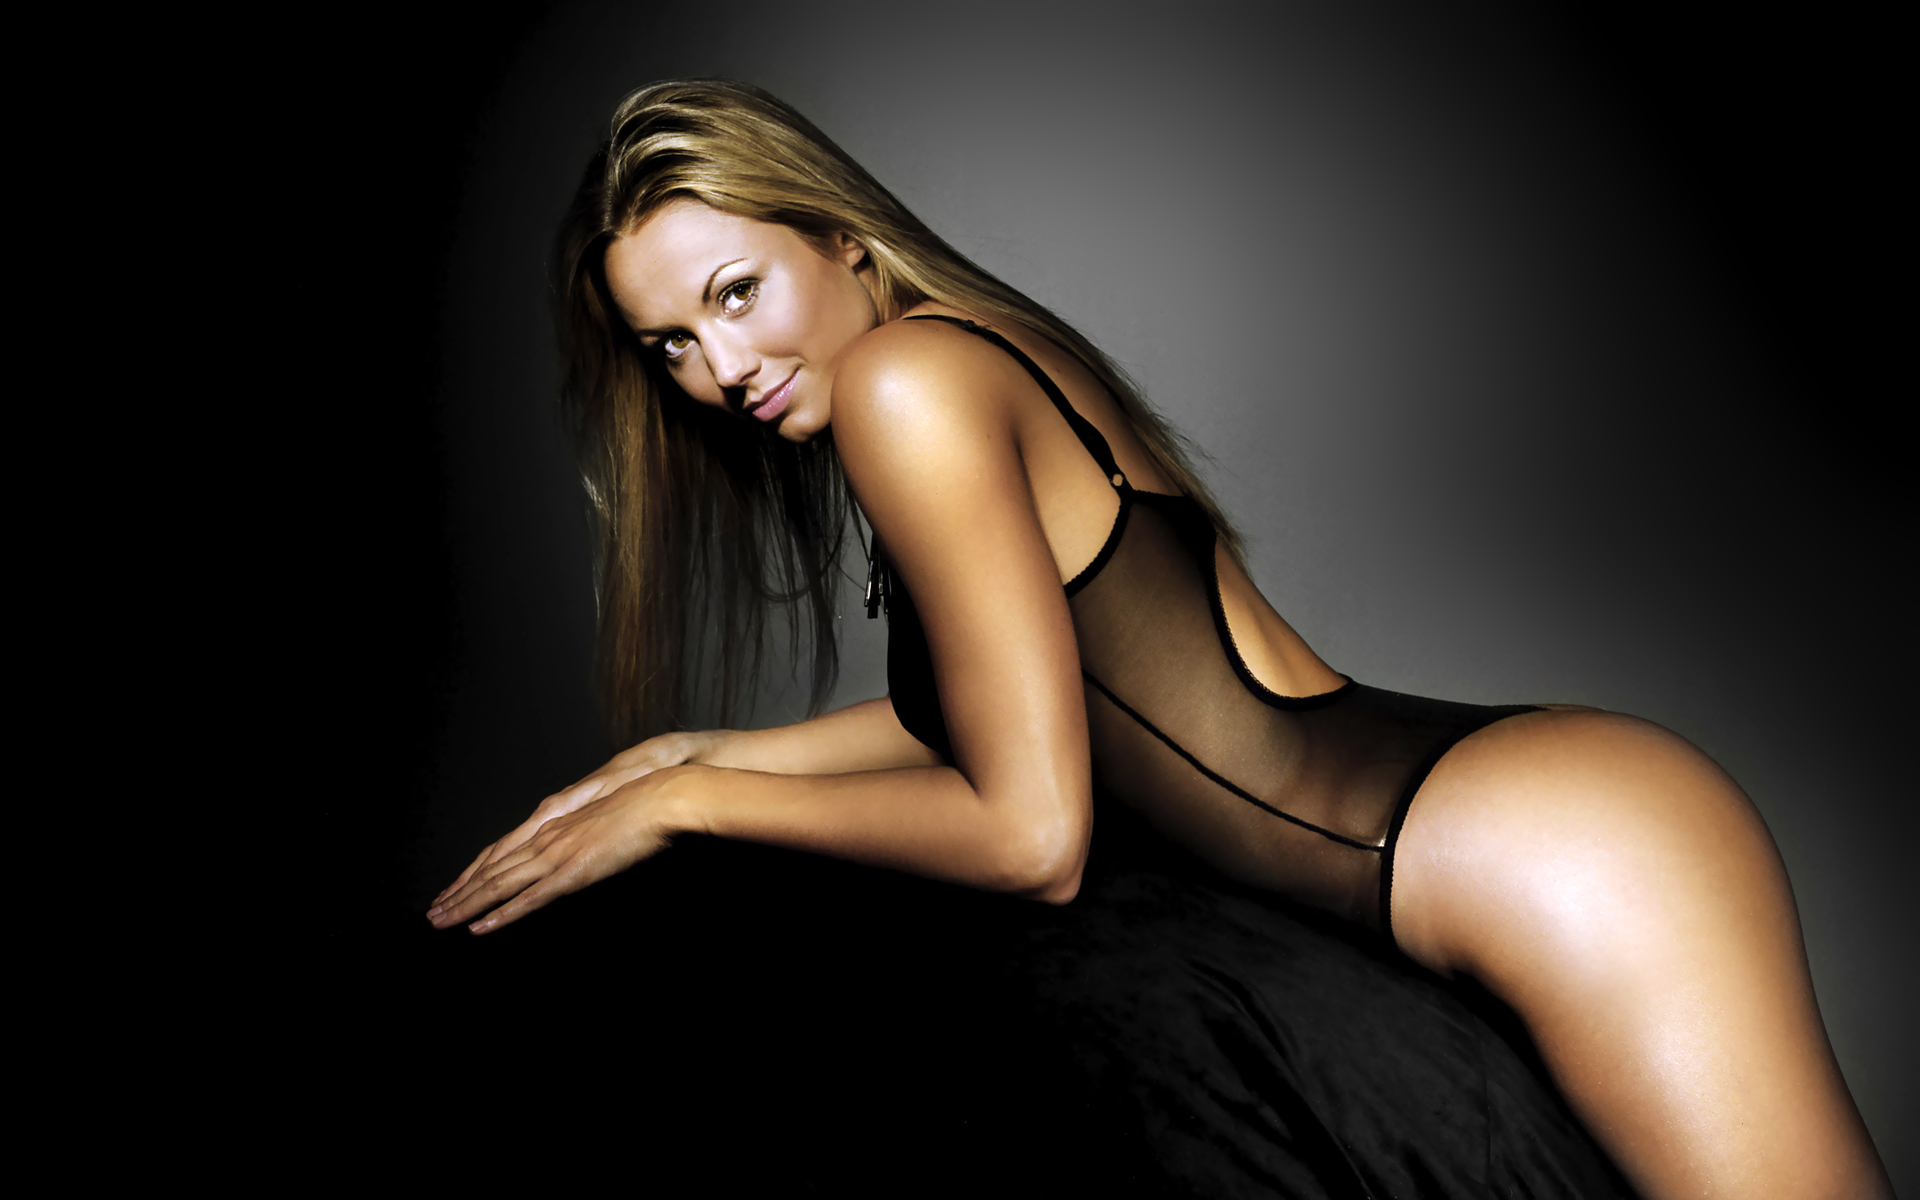 47 stacy keibler wallpapers - photo #17